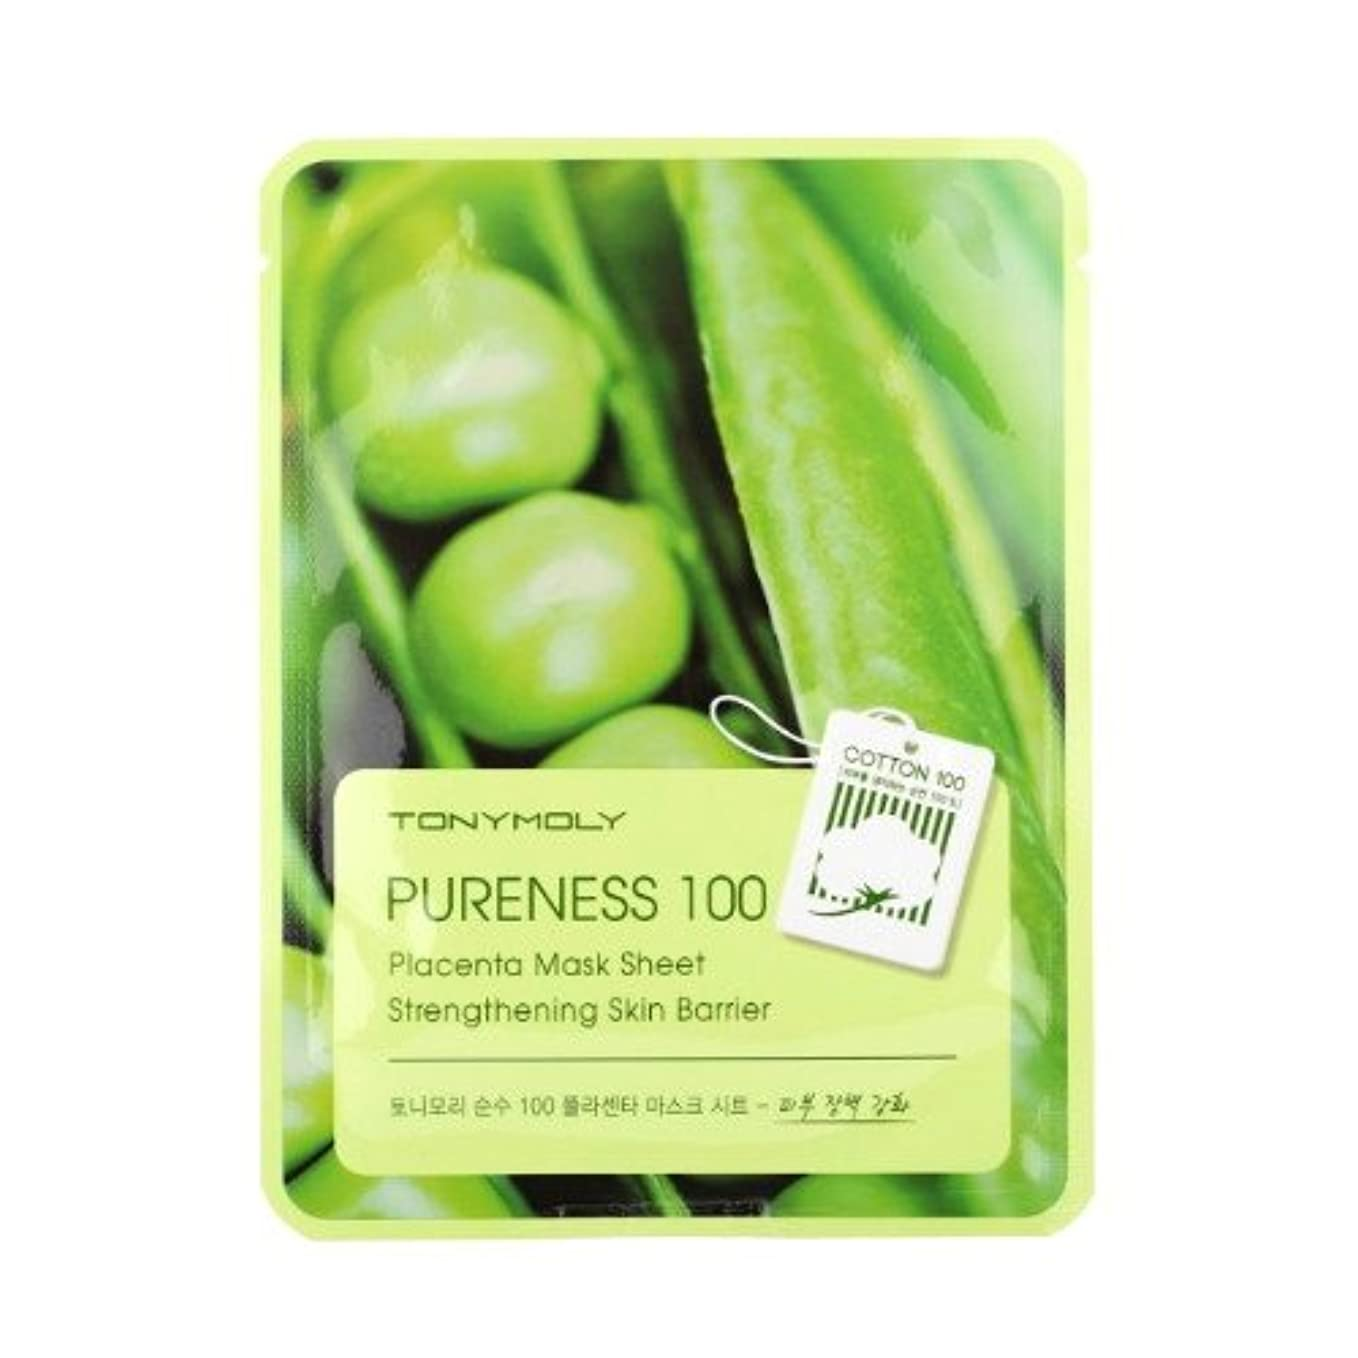 密度強化するチューインガム(6 Pack) TONYMOLY Pureness 100 Placenta Mask Sheet Strengthening Skin Barrier (並行輸入品)